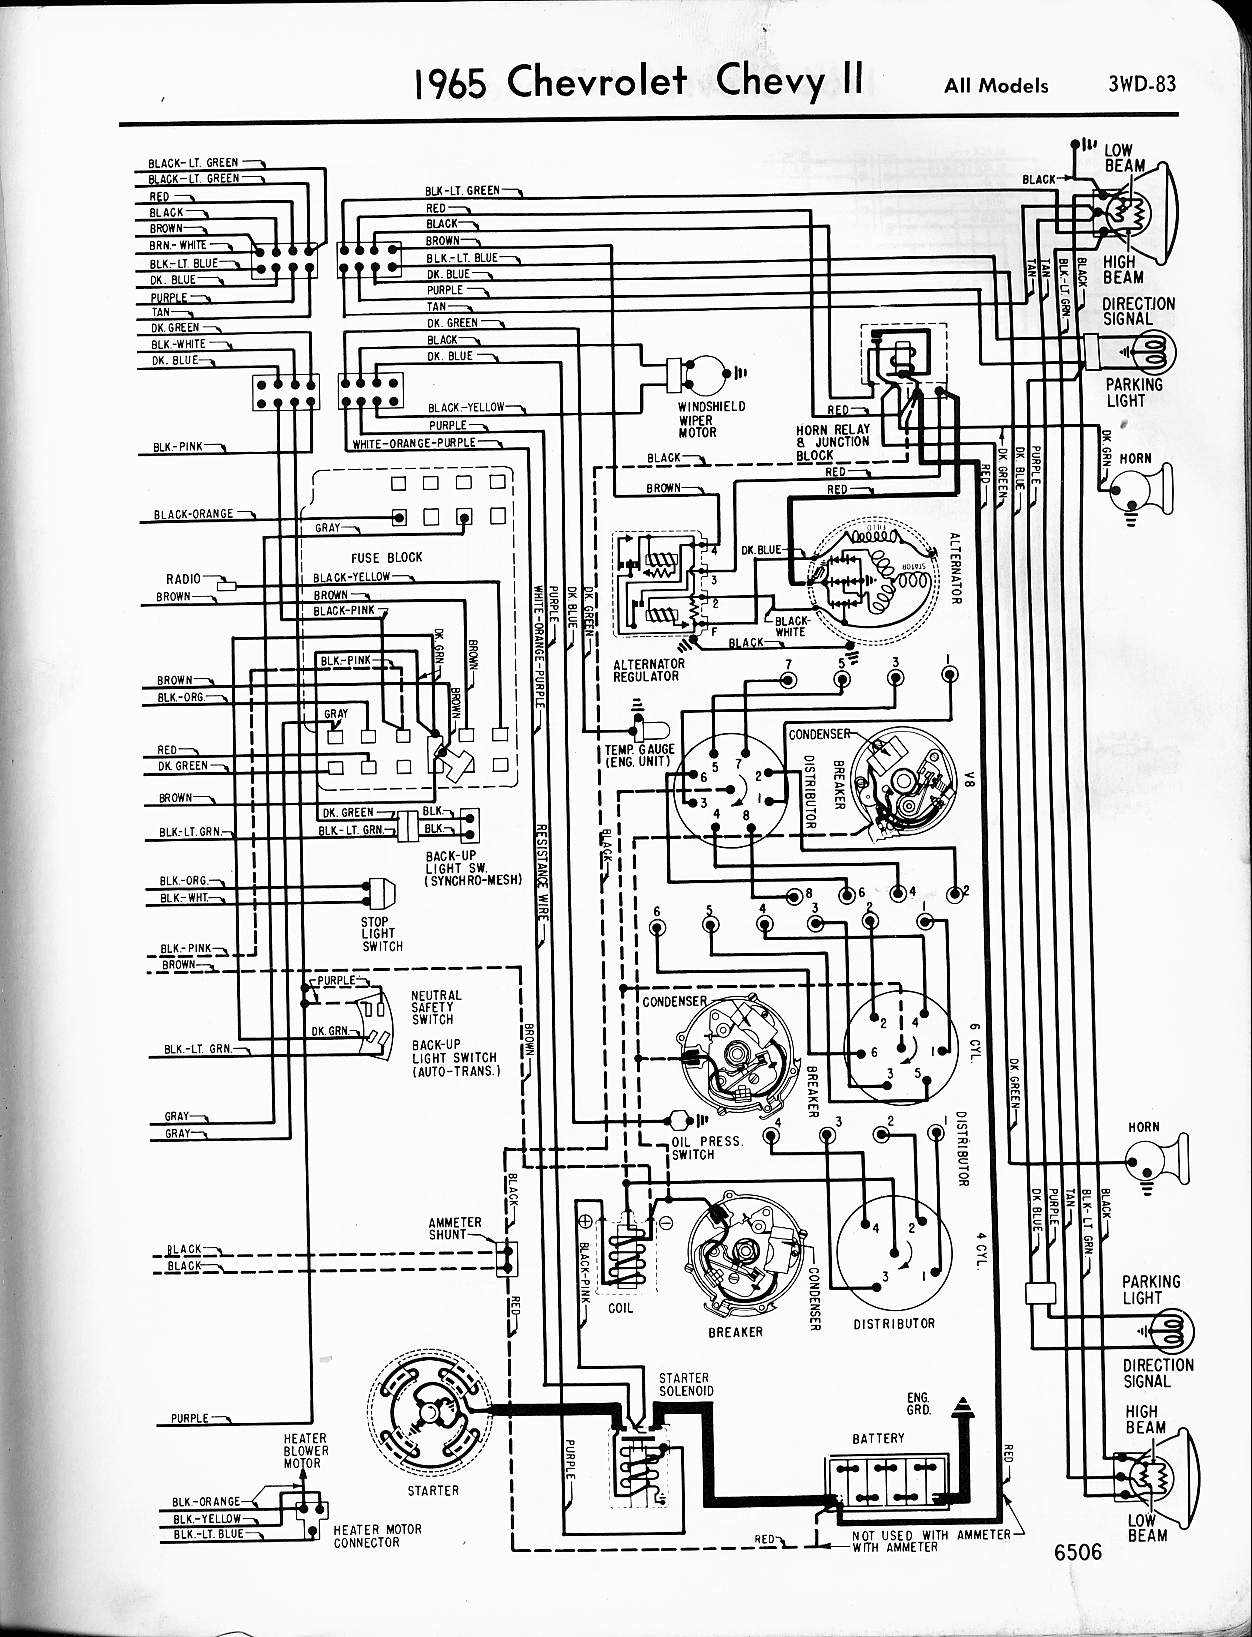 1965 Chevy C10 Wiring Diagram Diagrams For Silverado 57 65 Rh Oldcarmanualproject Com Chevrolet Truck